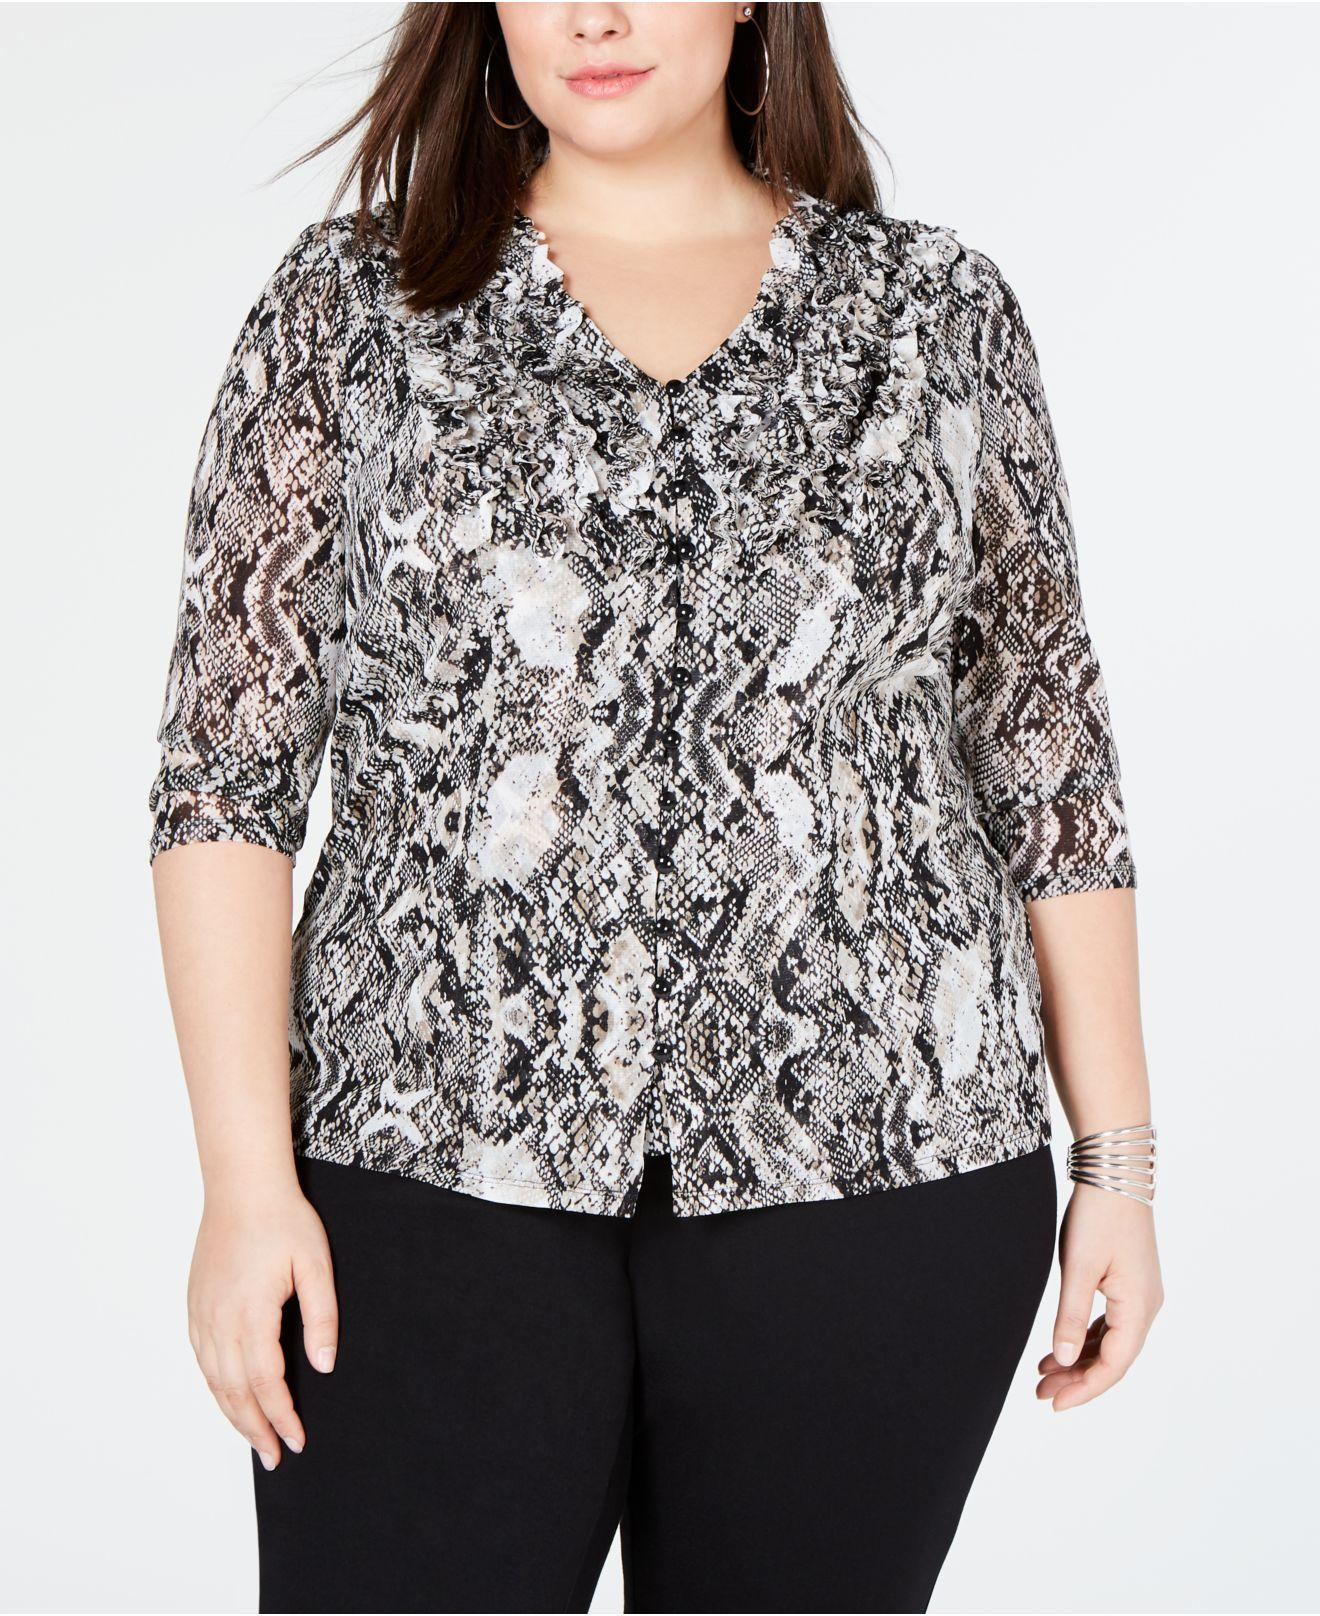 1bbe799f853 Lyst - INC International Concepts I.n.c. Plus Size Ruffle-front Top ...